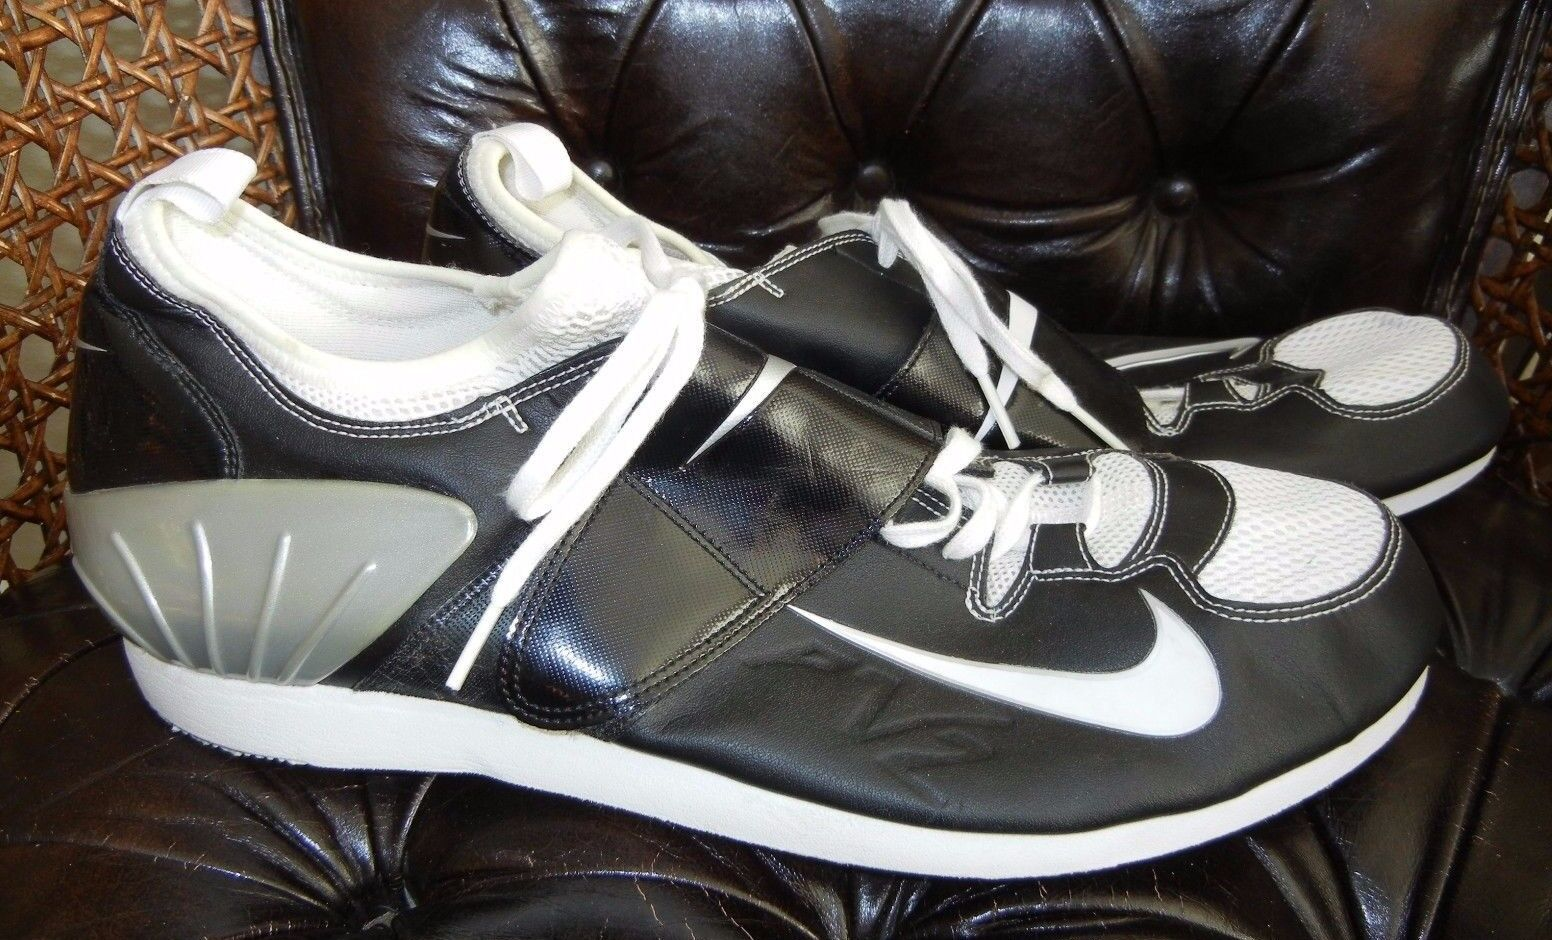 7f040bc46f1 NIKE BOWERMAN Black Gray TRACK TRACK TRACK SHOES Size Men s 14 - NO SPIKES  Running Jumping e9f36a